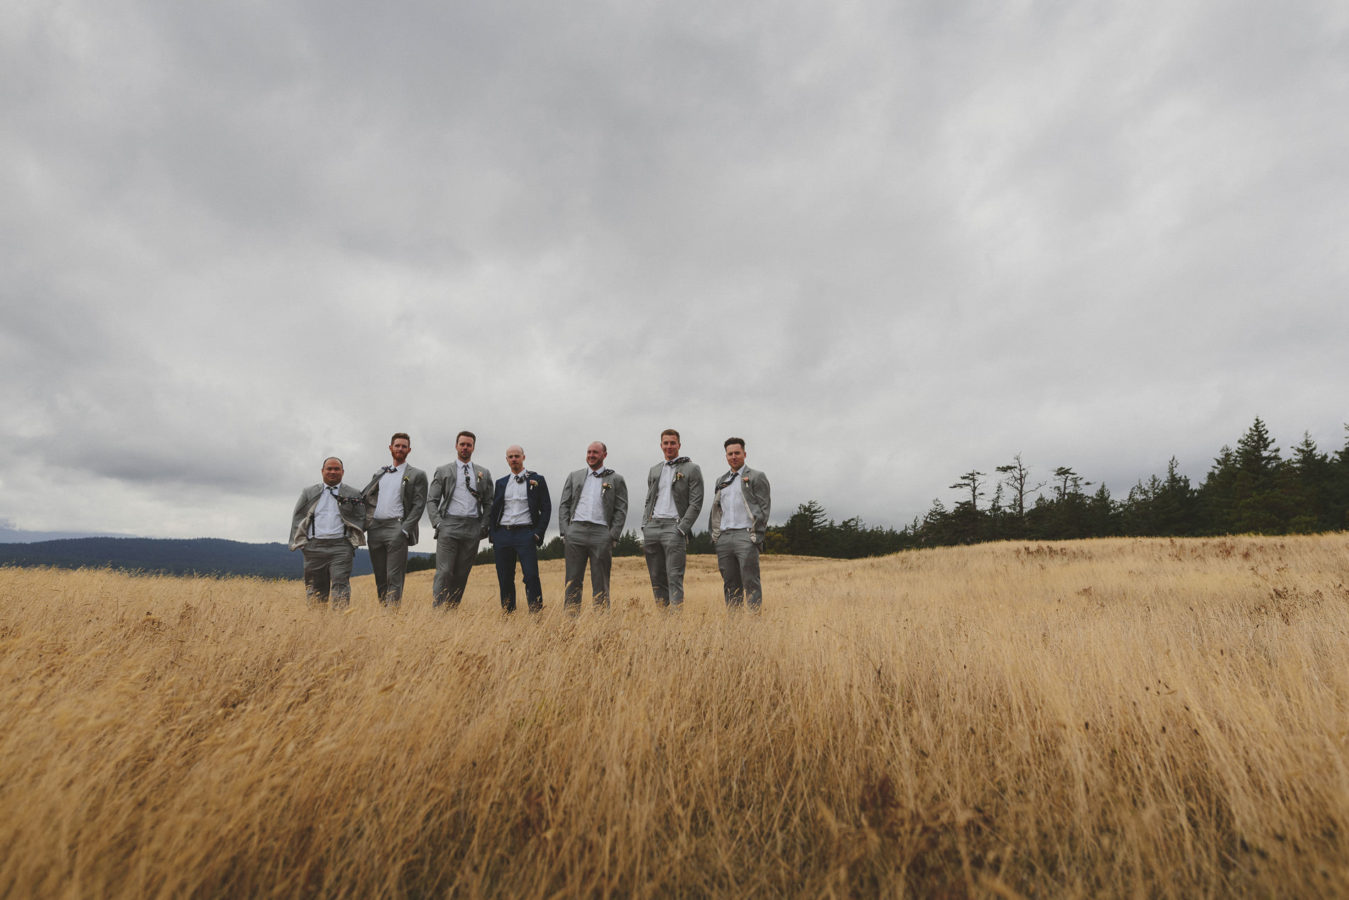 looking across a wind swept grassy field at a groom and size groomsmen standing for a portrait in the wind with a stormy sky above